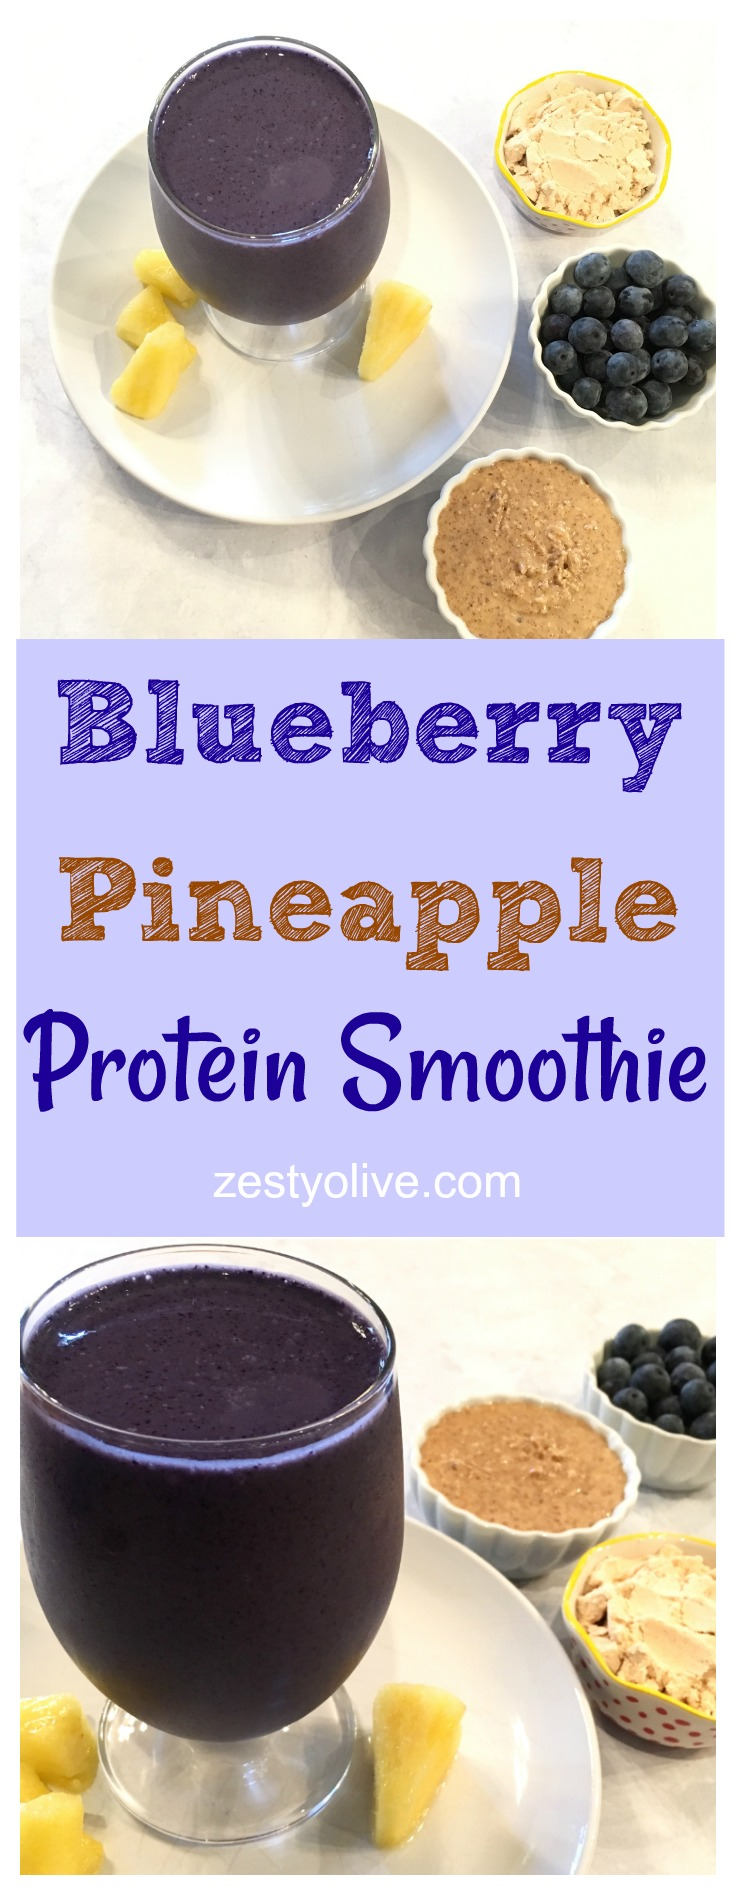 Blueberry Pineapple Protein Smoothie * Zesty Olive ...